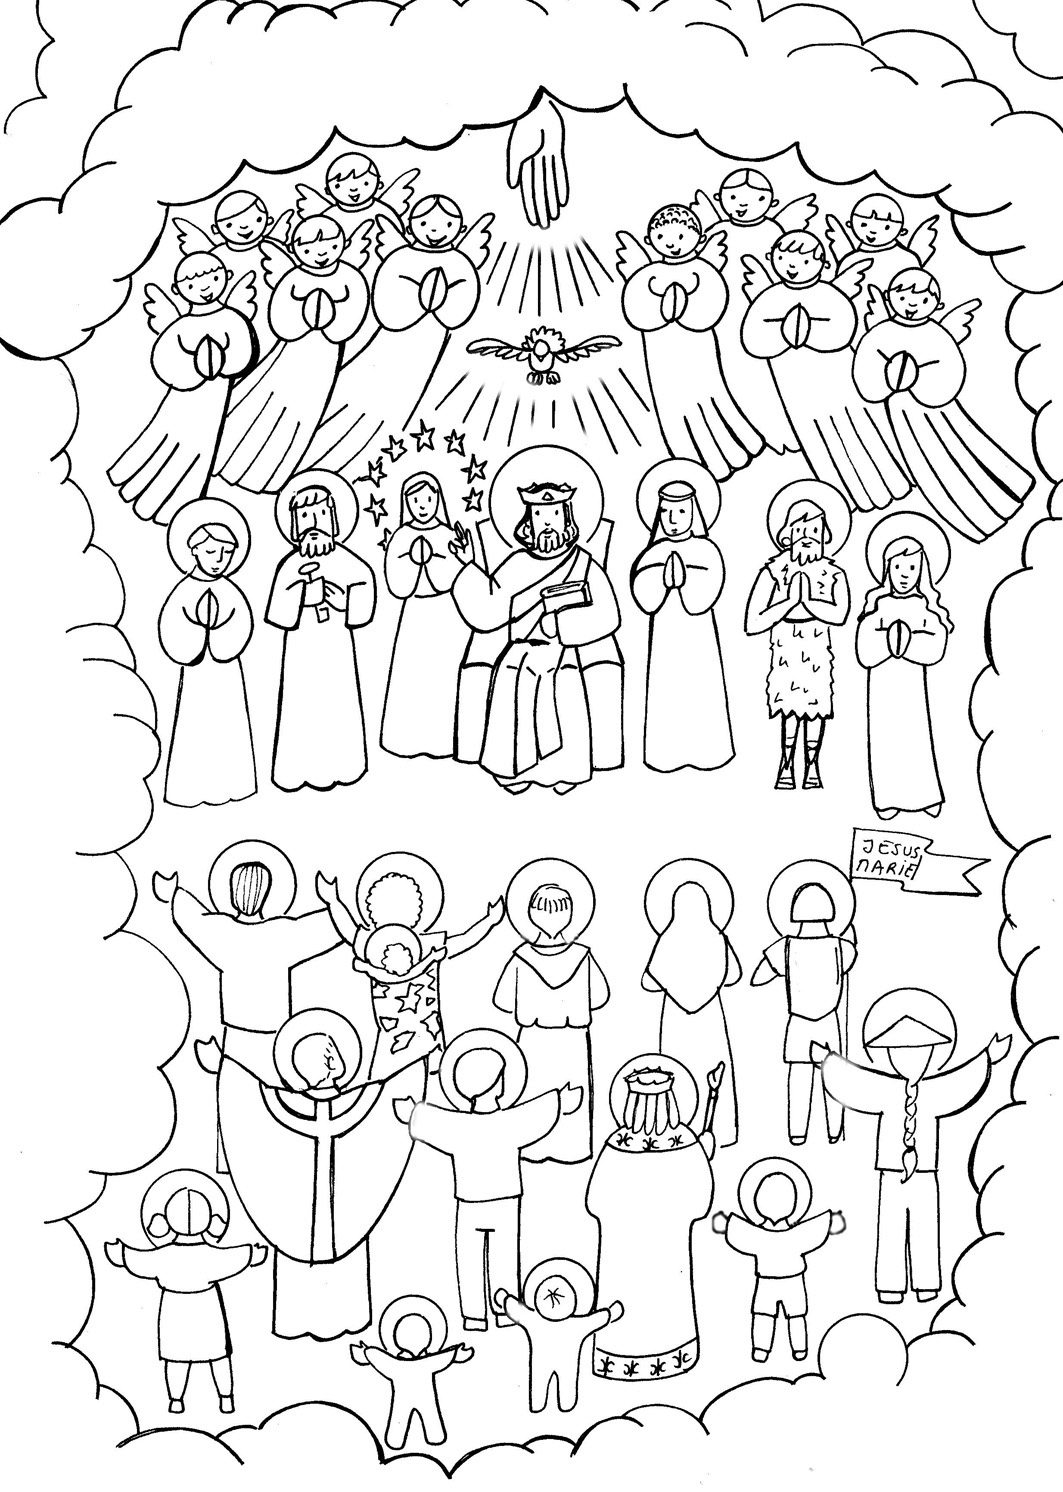 All Saints Day Coloring Pages Home Sketch Coloring Page